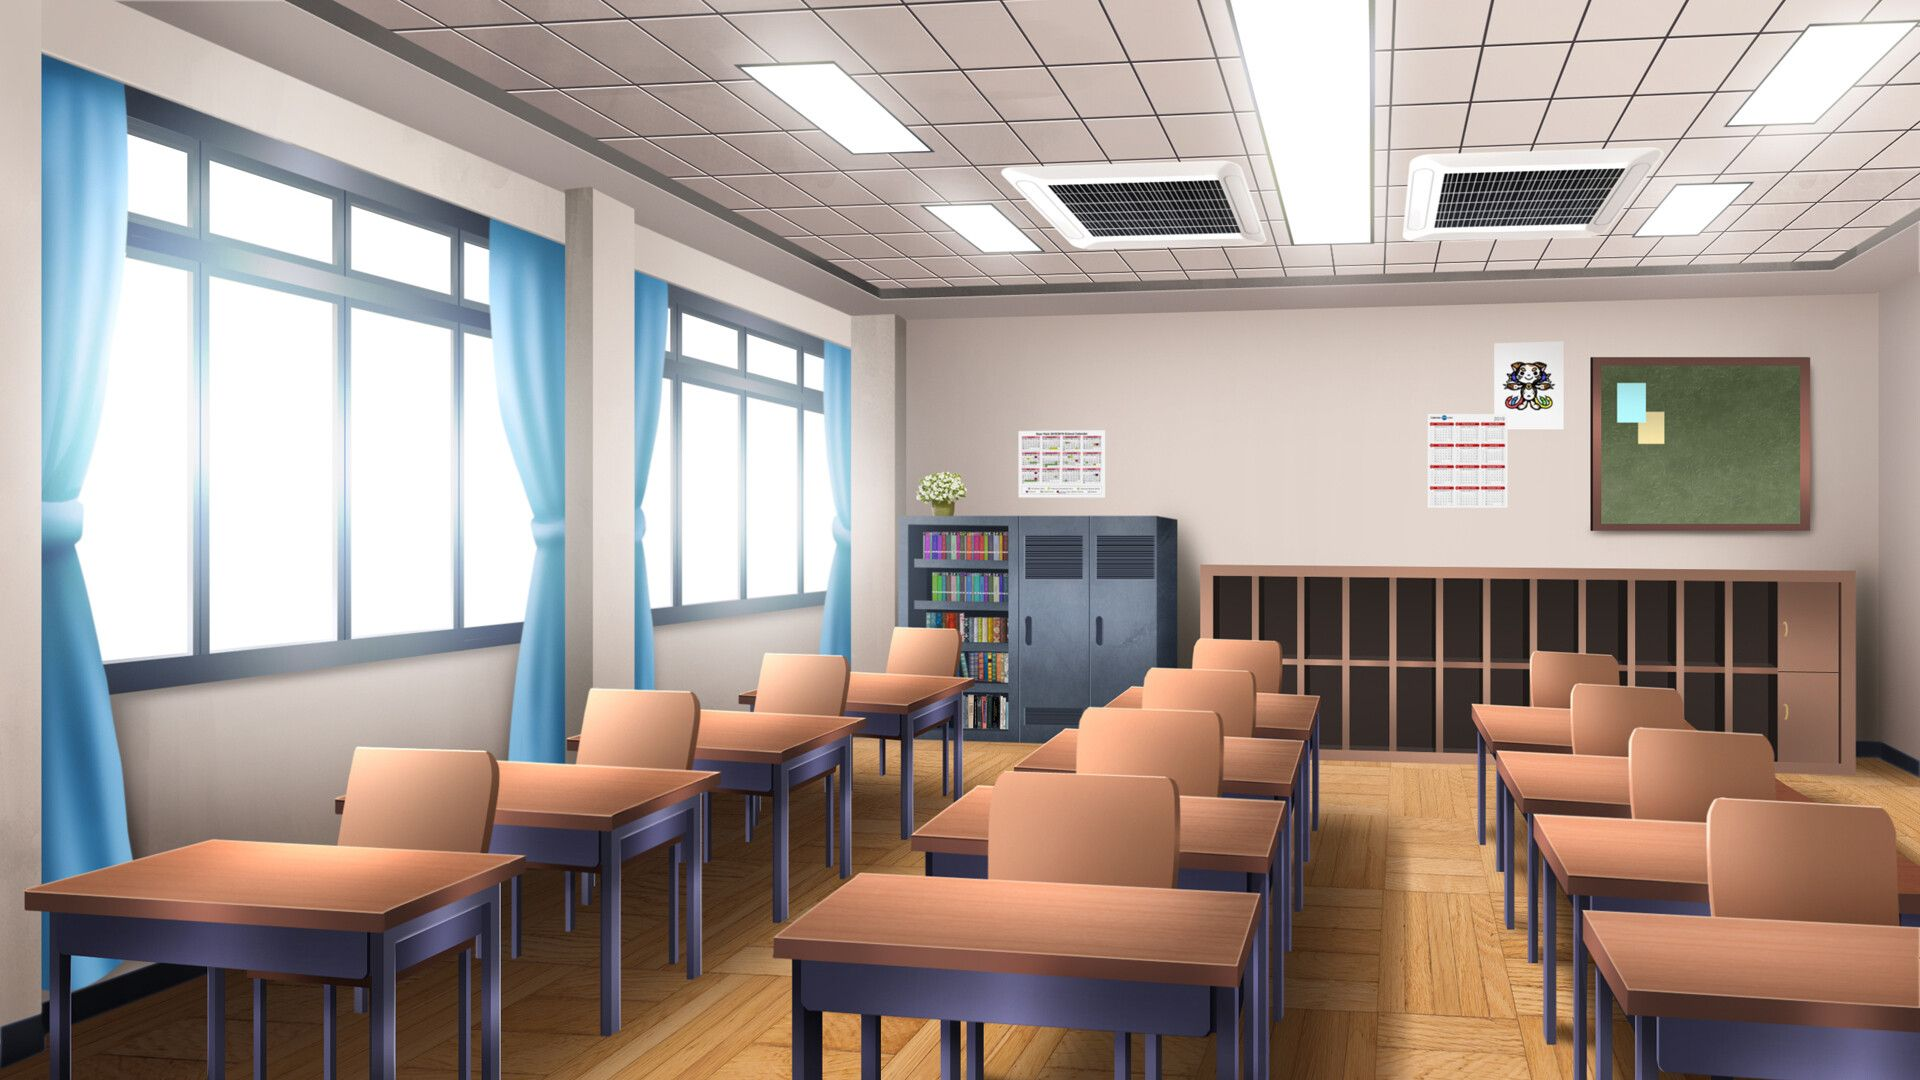 Artstation Classroom Visual Novel Bg Duy Tung In 2020 Anime Classroom Episode Interactive Backgrounds Living Room Background